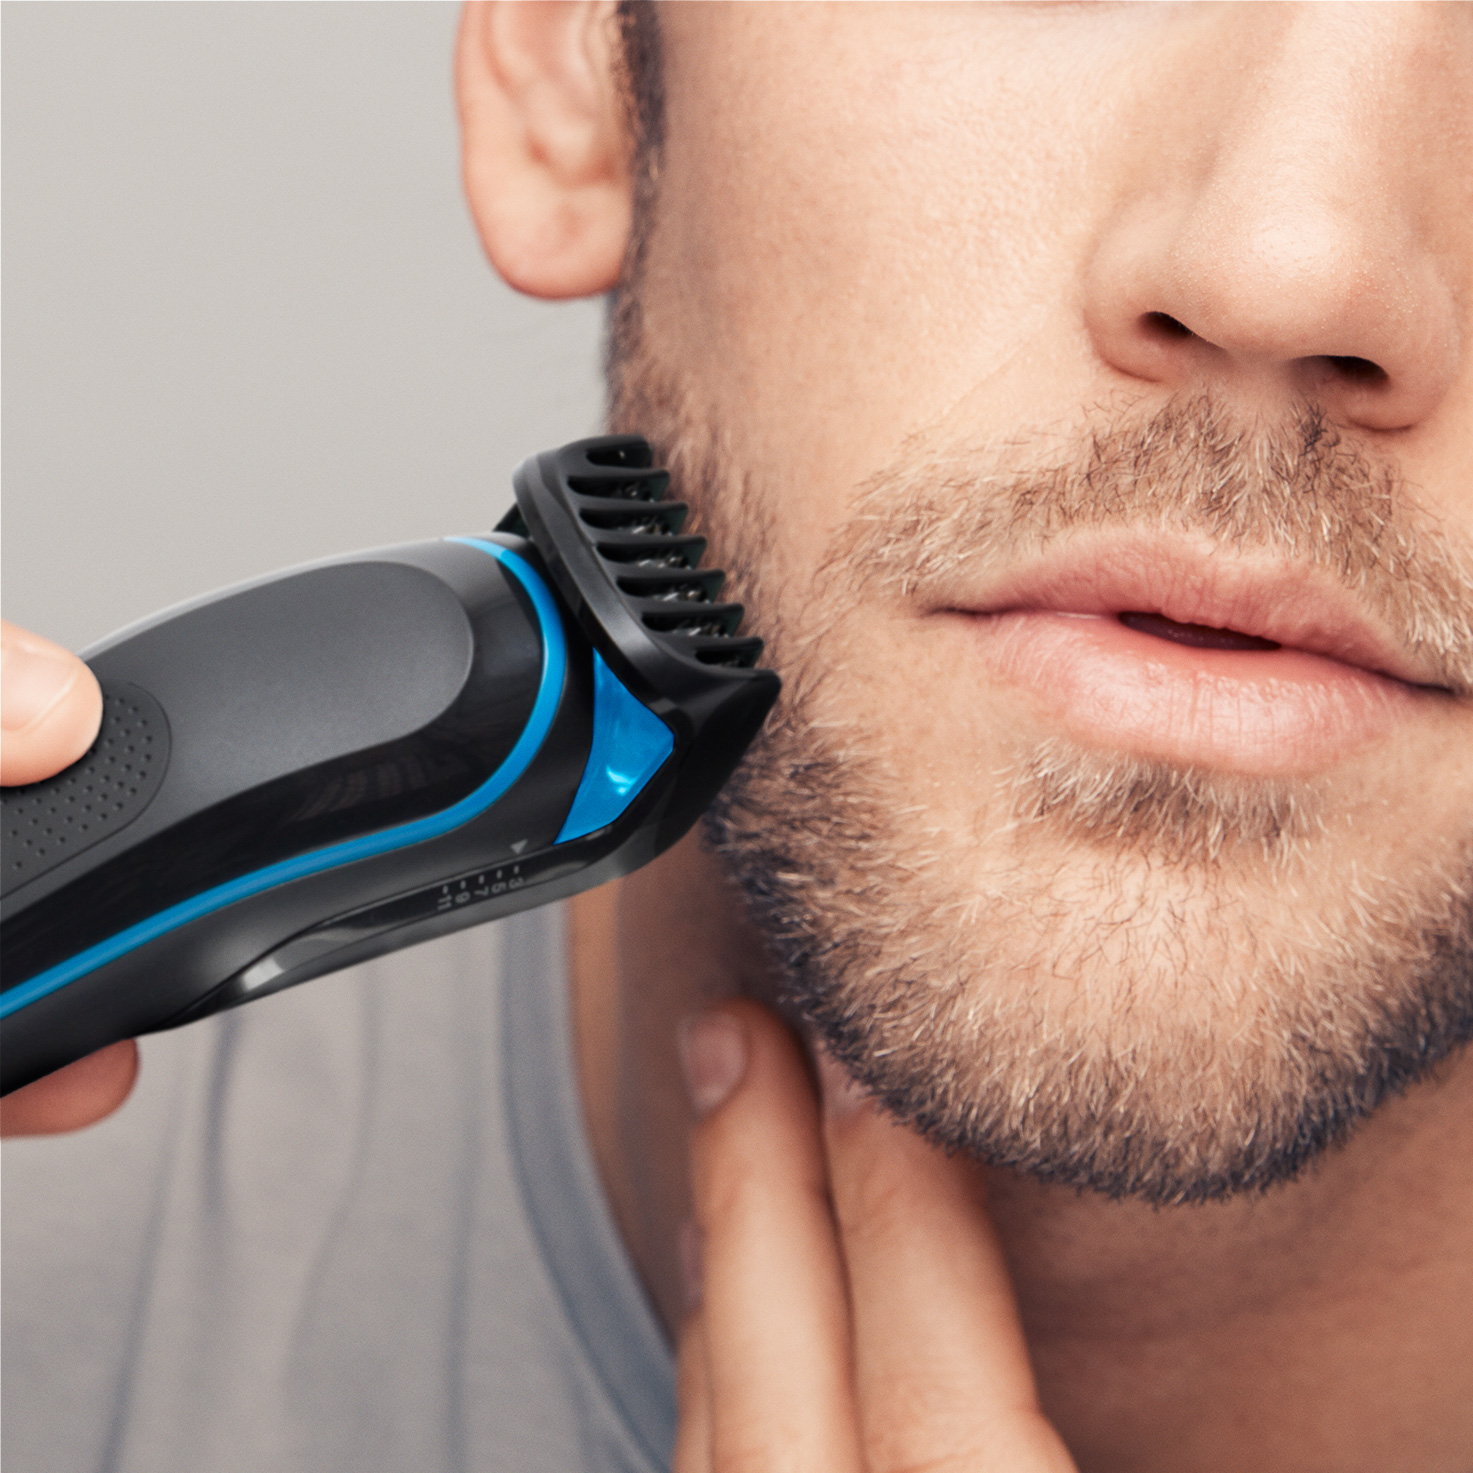 Braun All-in-one trimmer MGK5045 - In use